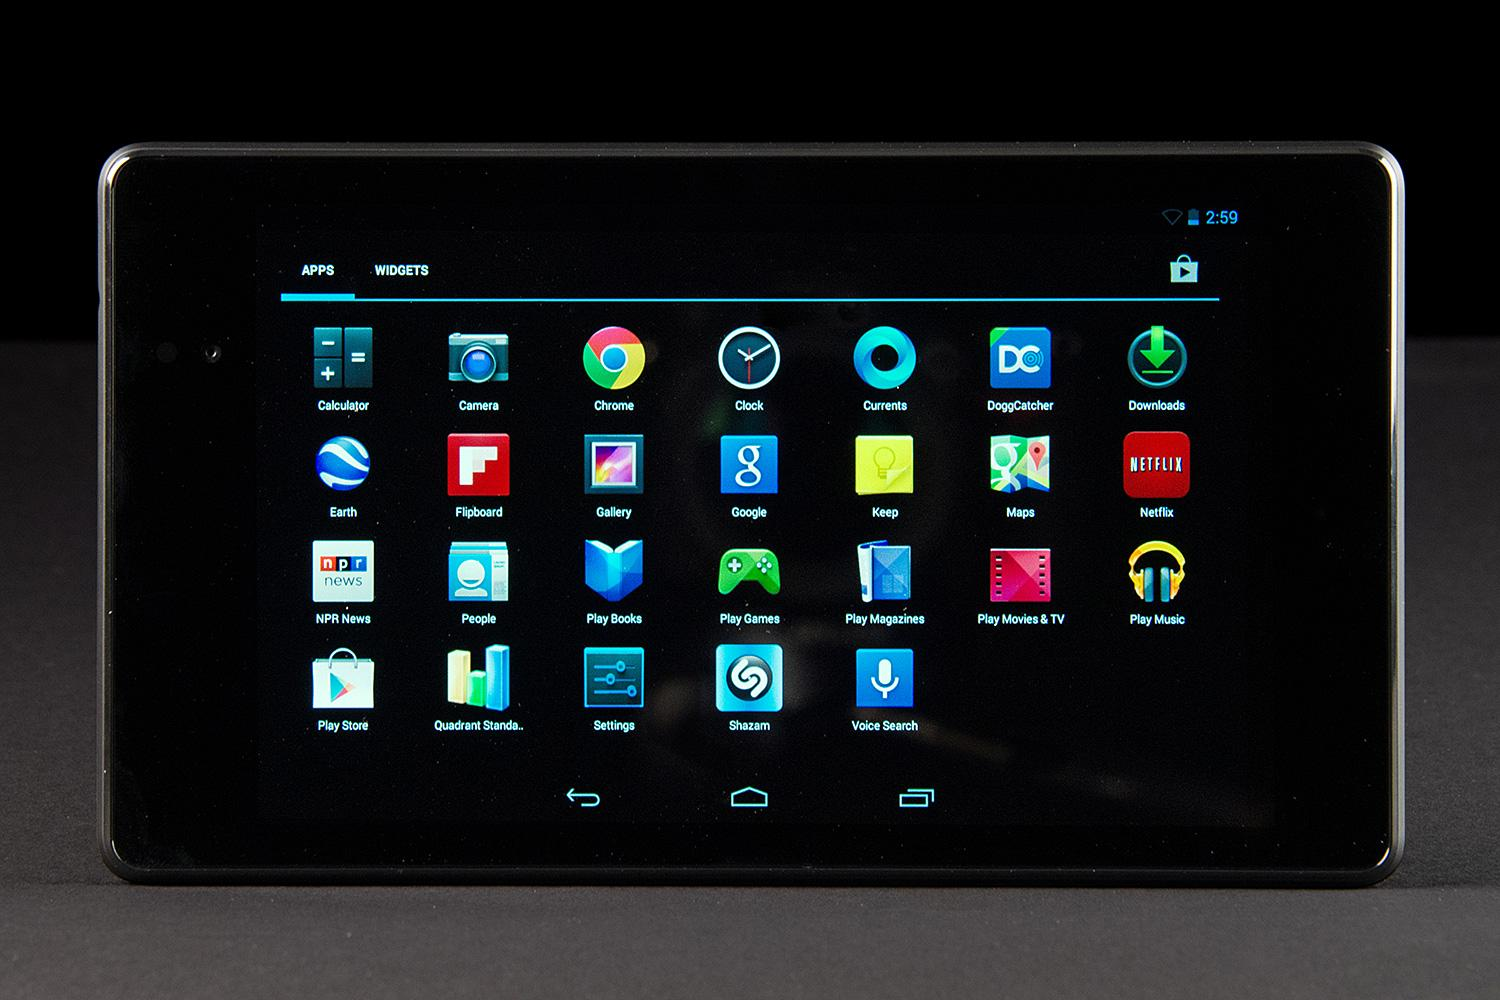 18 annoying problems with the Nexus 7, and how to fix them